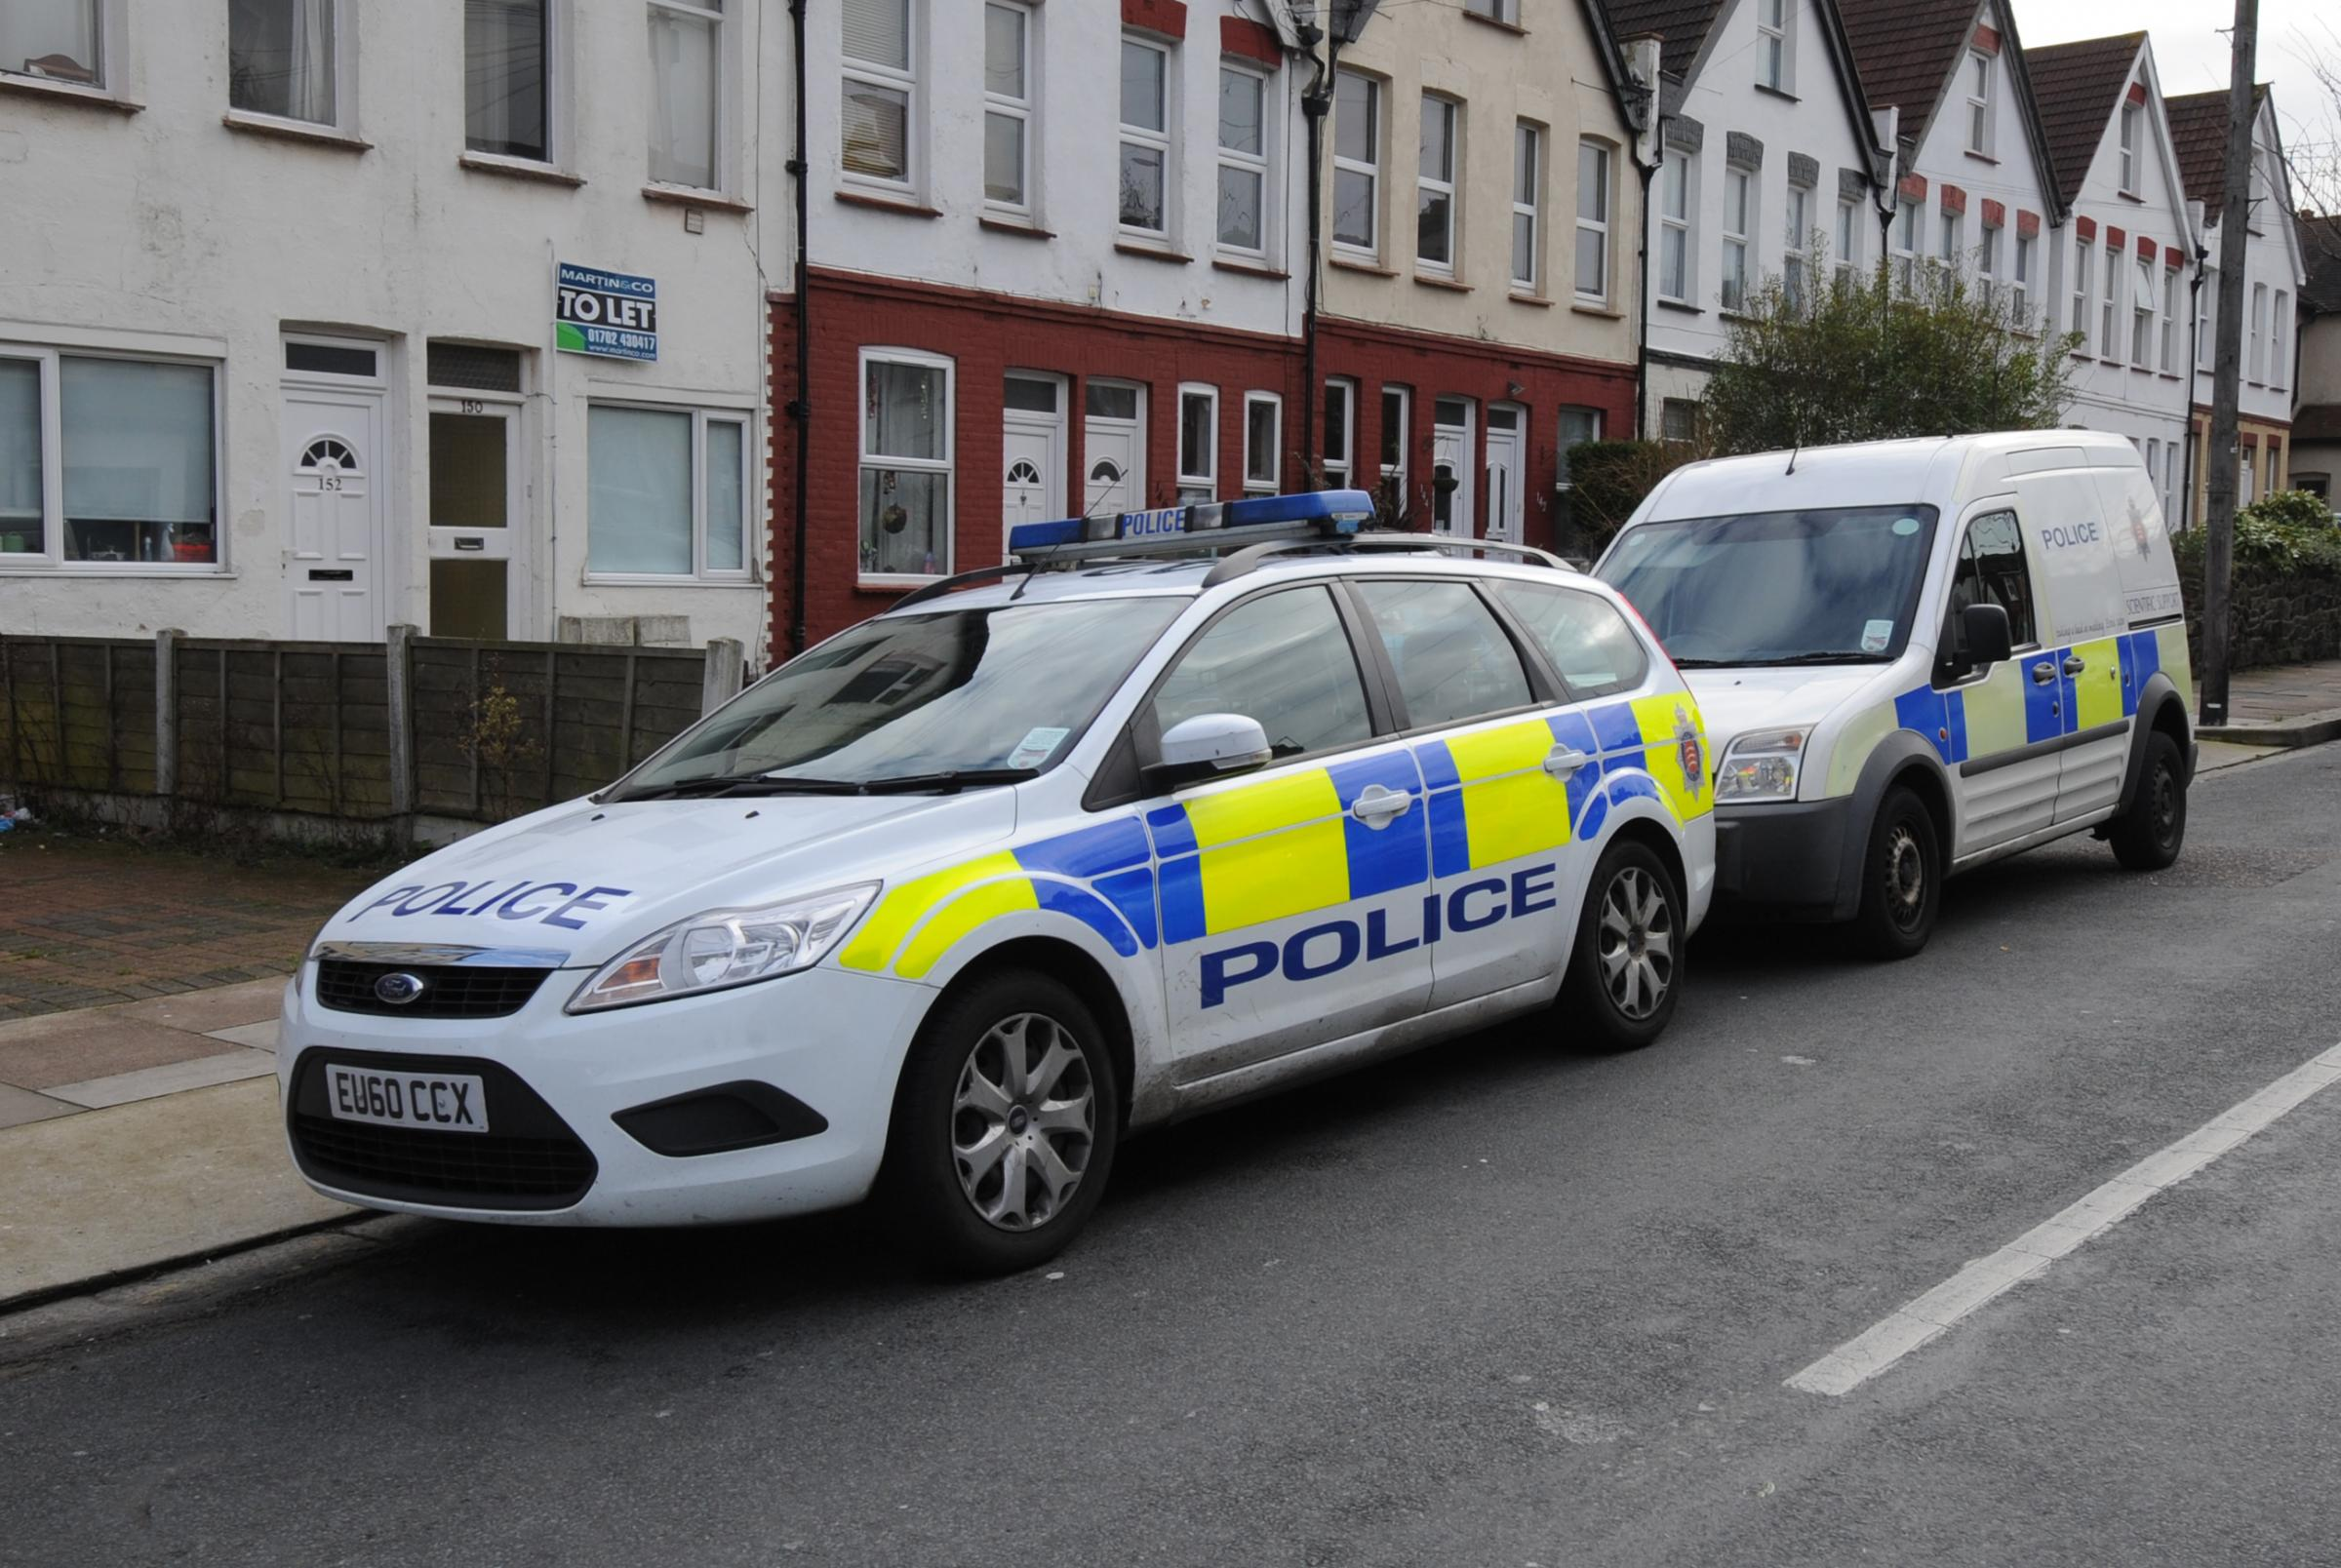 Seven arrested after man attacked in flat